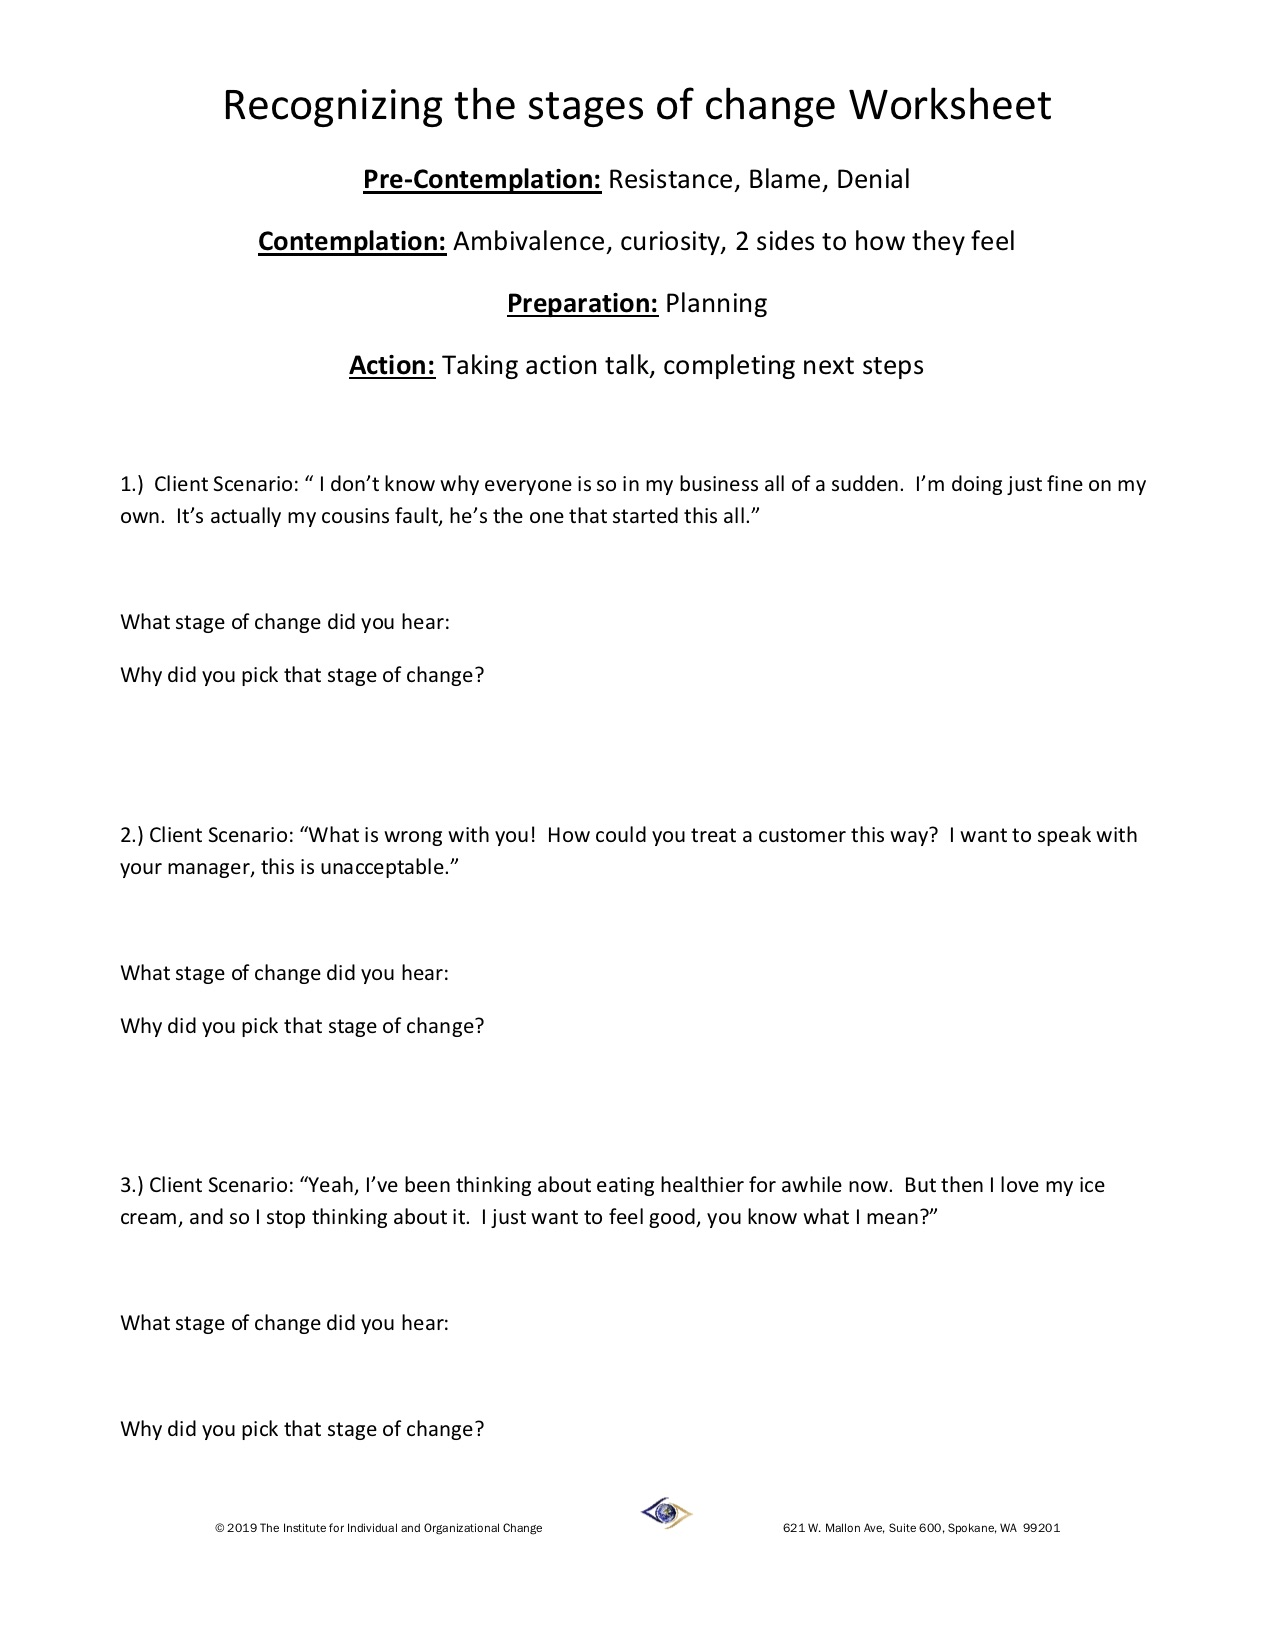 Stages Of Change Worksheet : stages, change, worksheet, Skill, Building, Worksheets:, Stages, Change, Practice, IFIOC